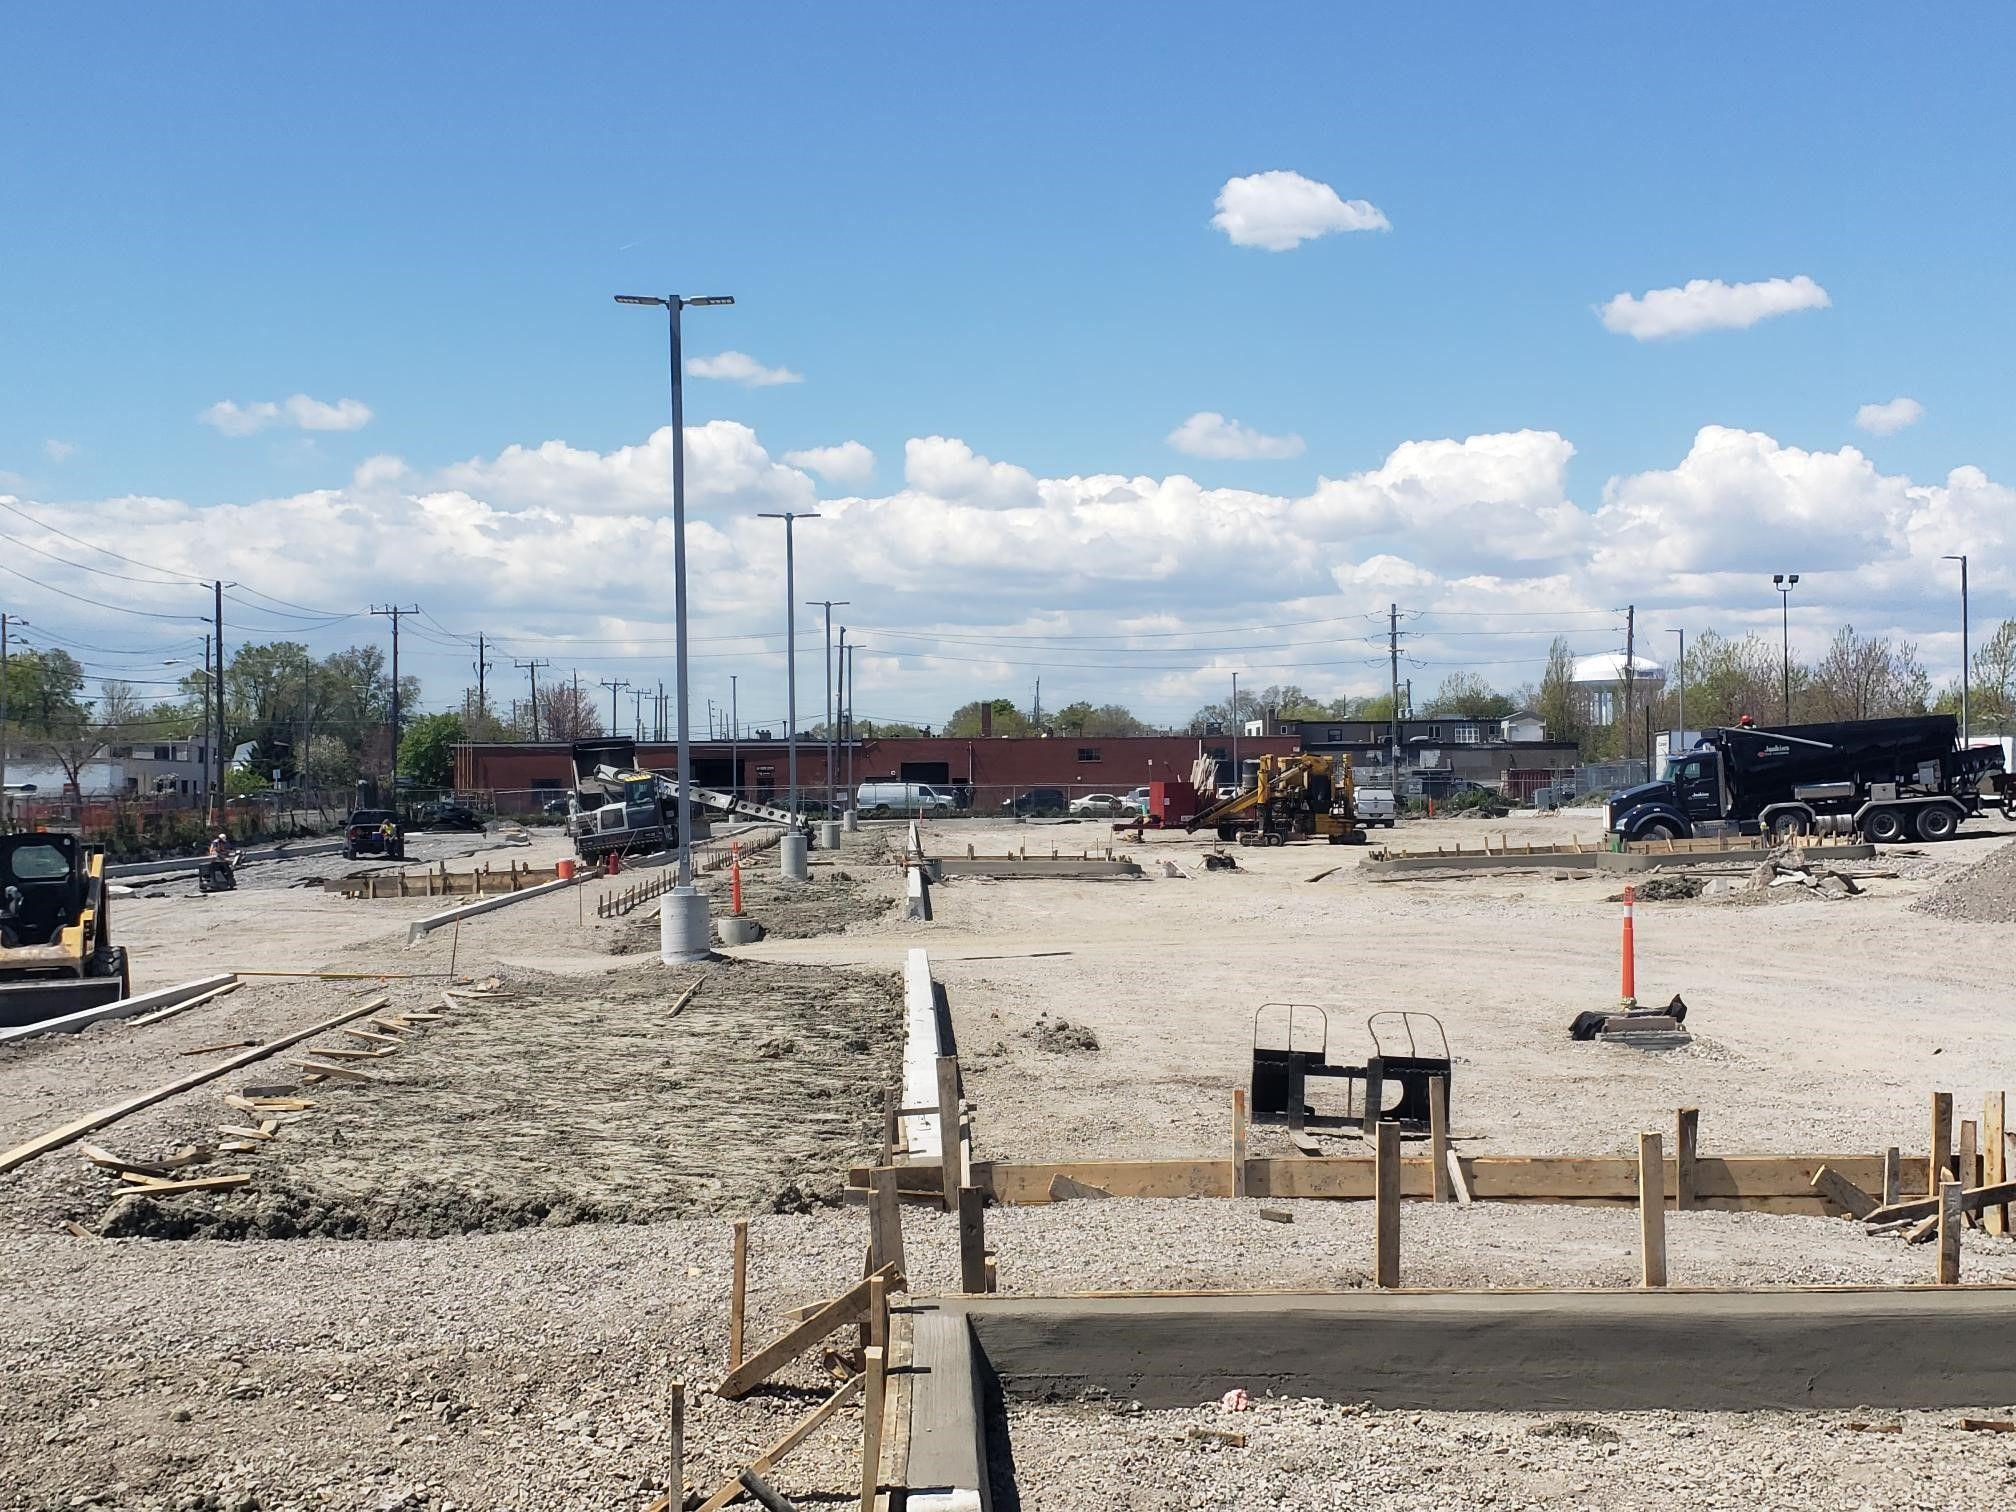 A huge parking lot is under construction. Sand covers the ground before the asphalt comes in. Big trucks pepper the property